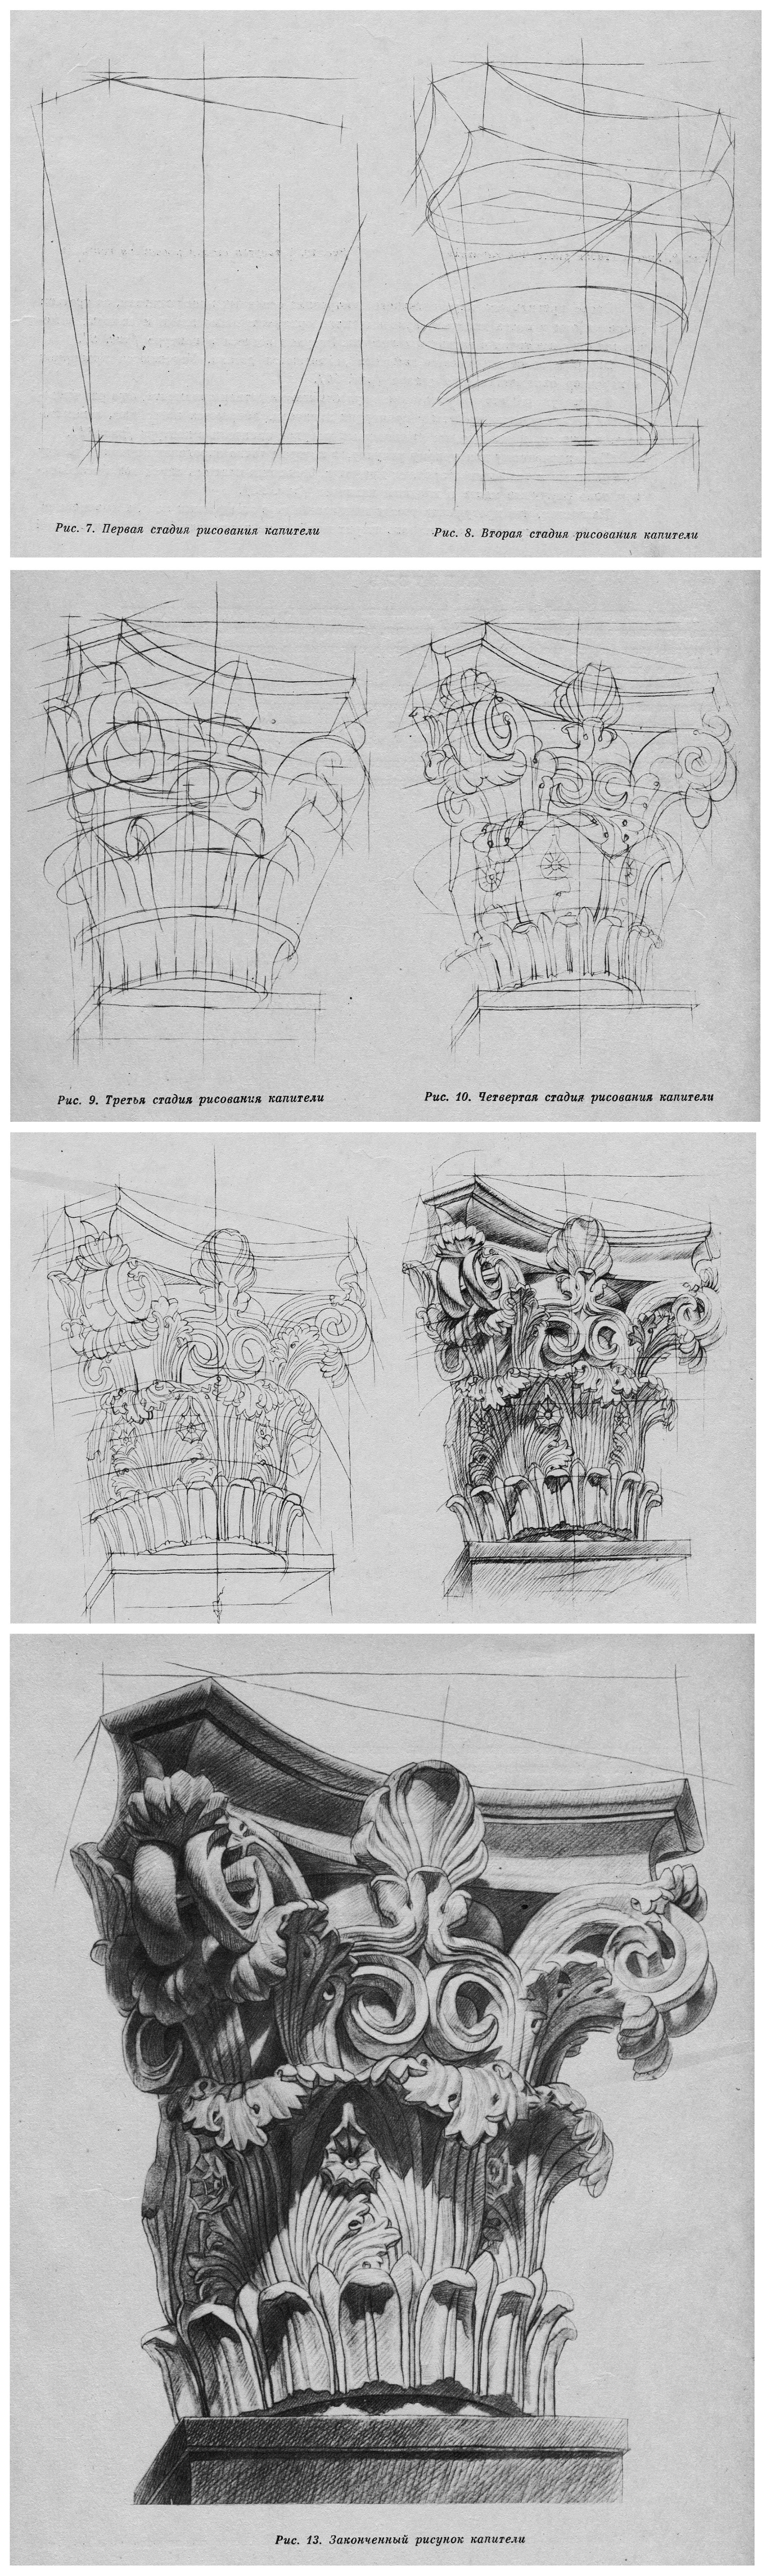 Stages Of Drawing Capital Chapiter Procesos Esquemas Linea